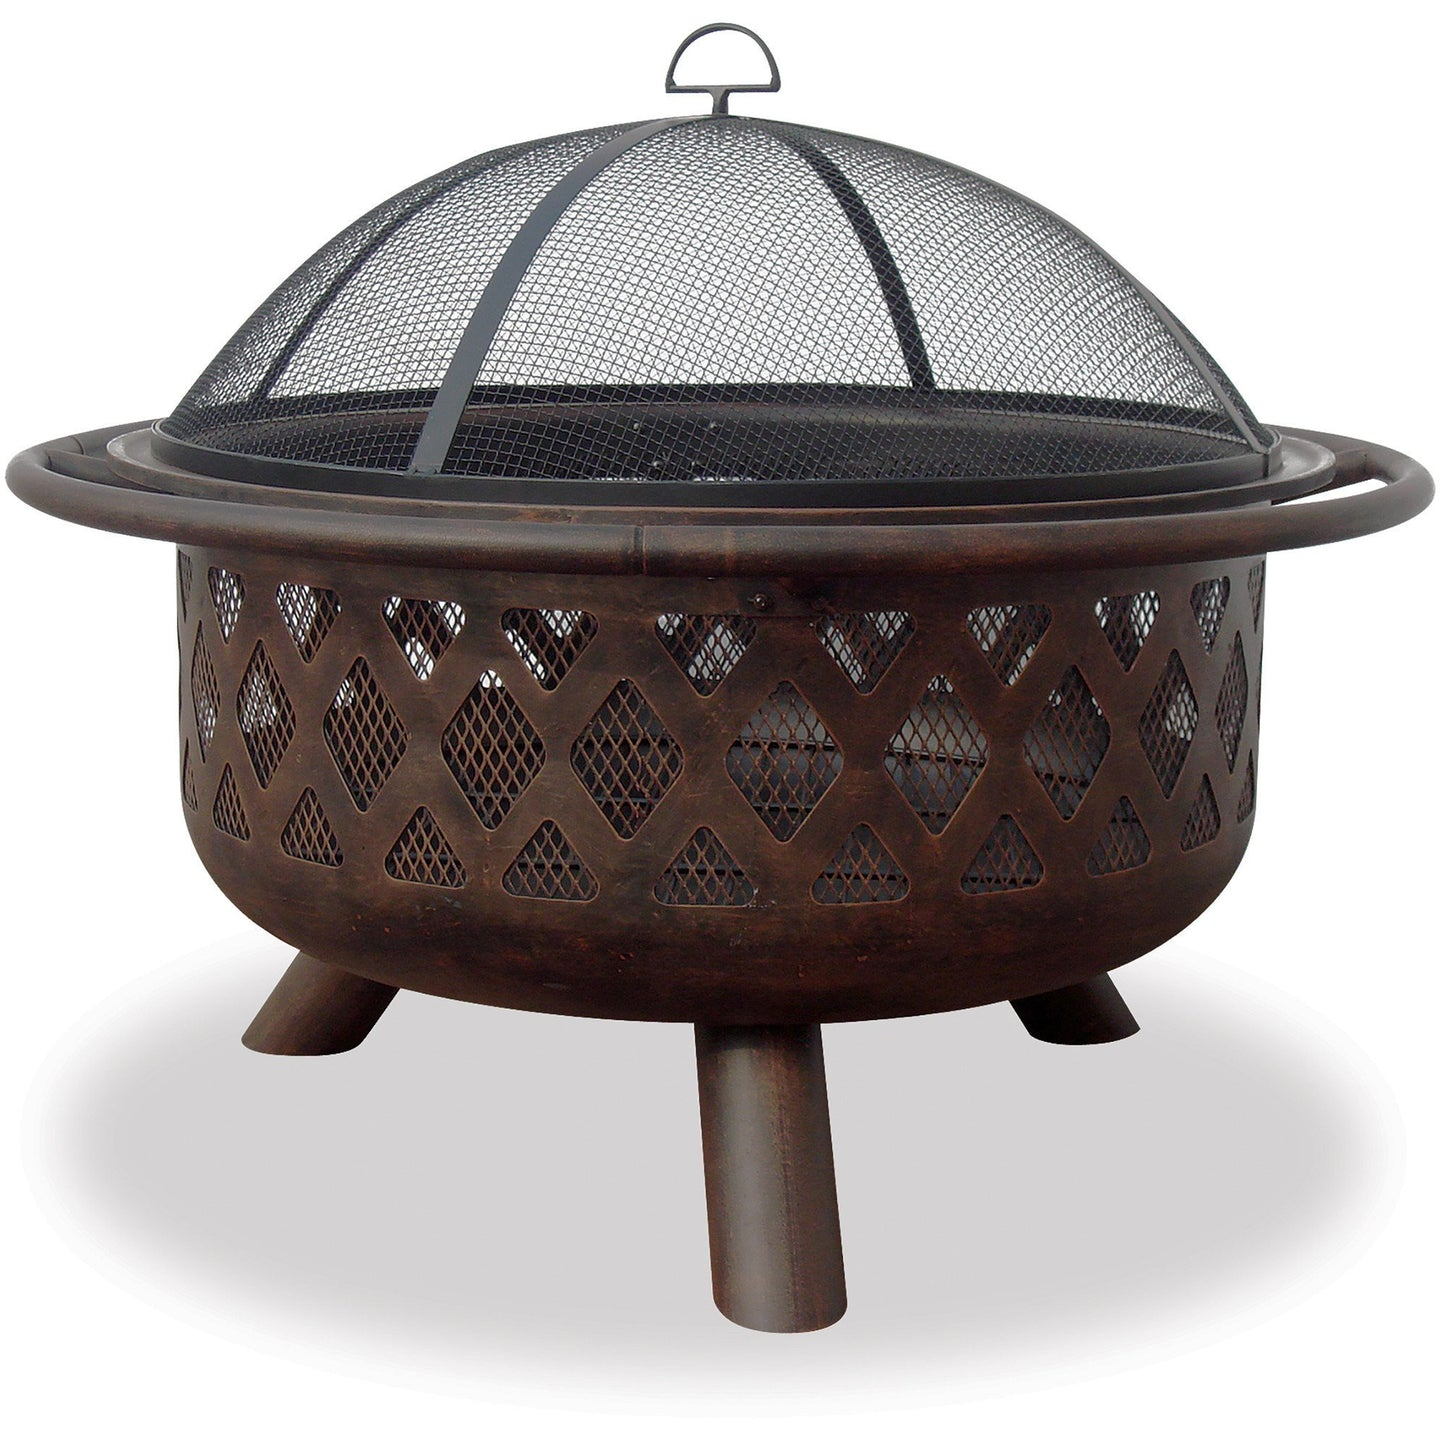 36 In Wide Oil Rubbed Bronze Firebowl With Lattice Design WAD792SP Mr BBQ - Fireplace Features